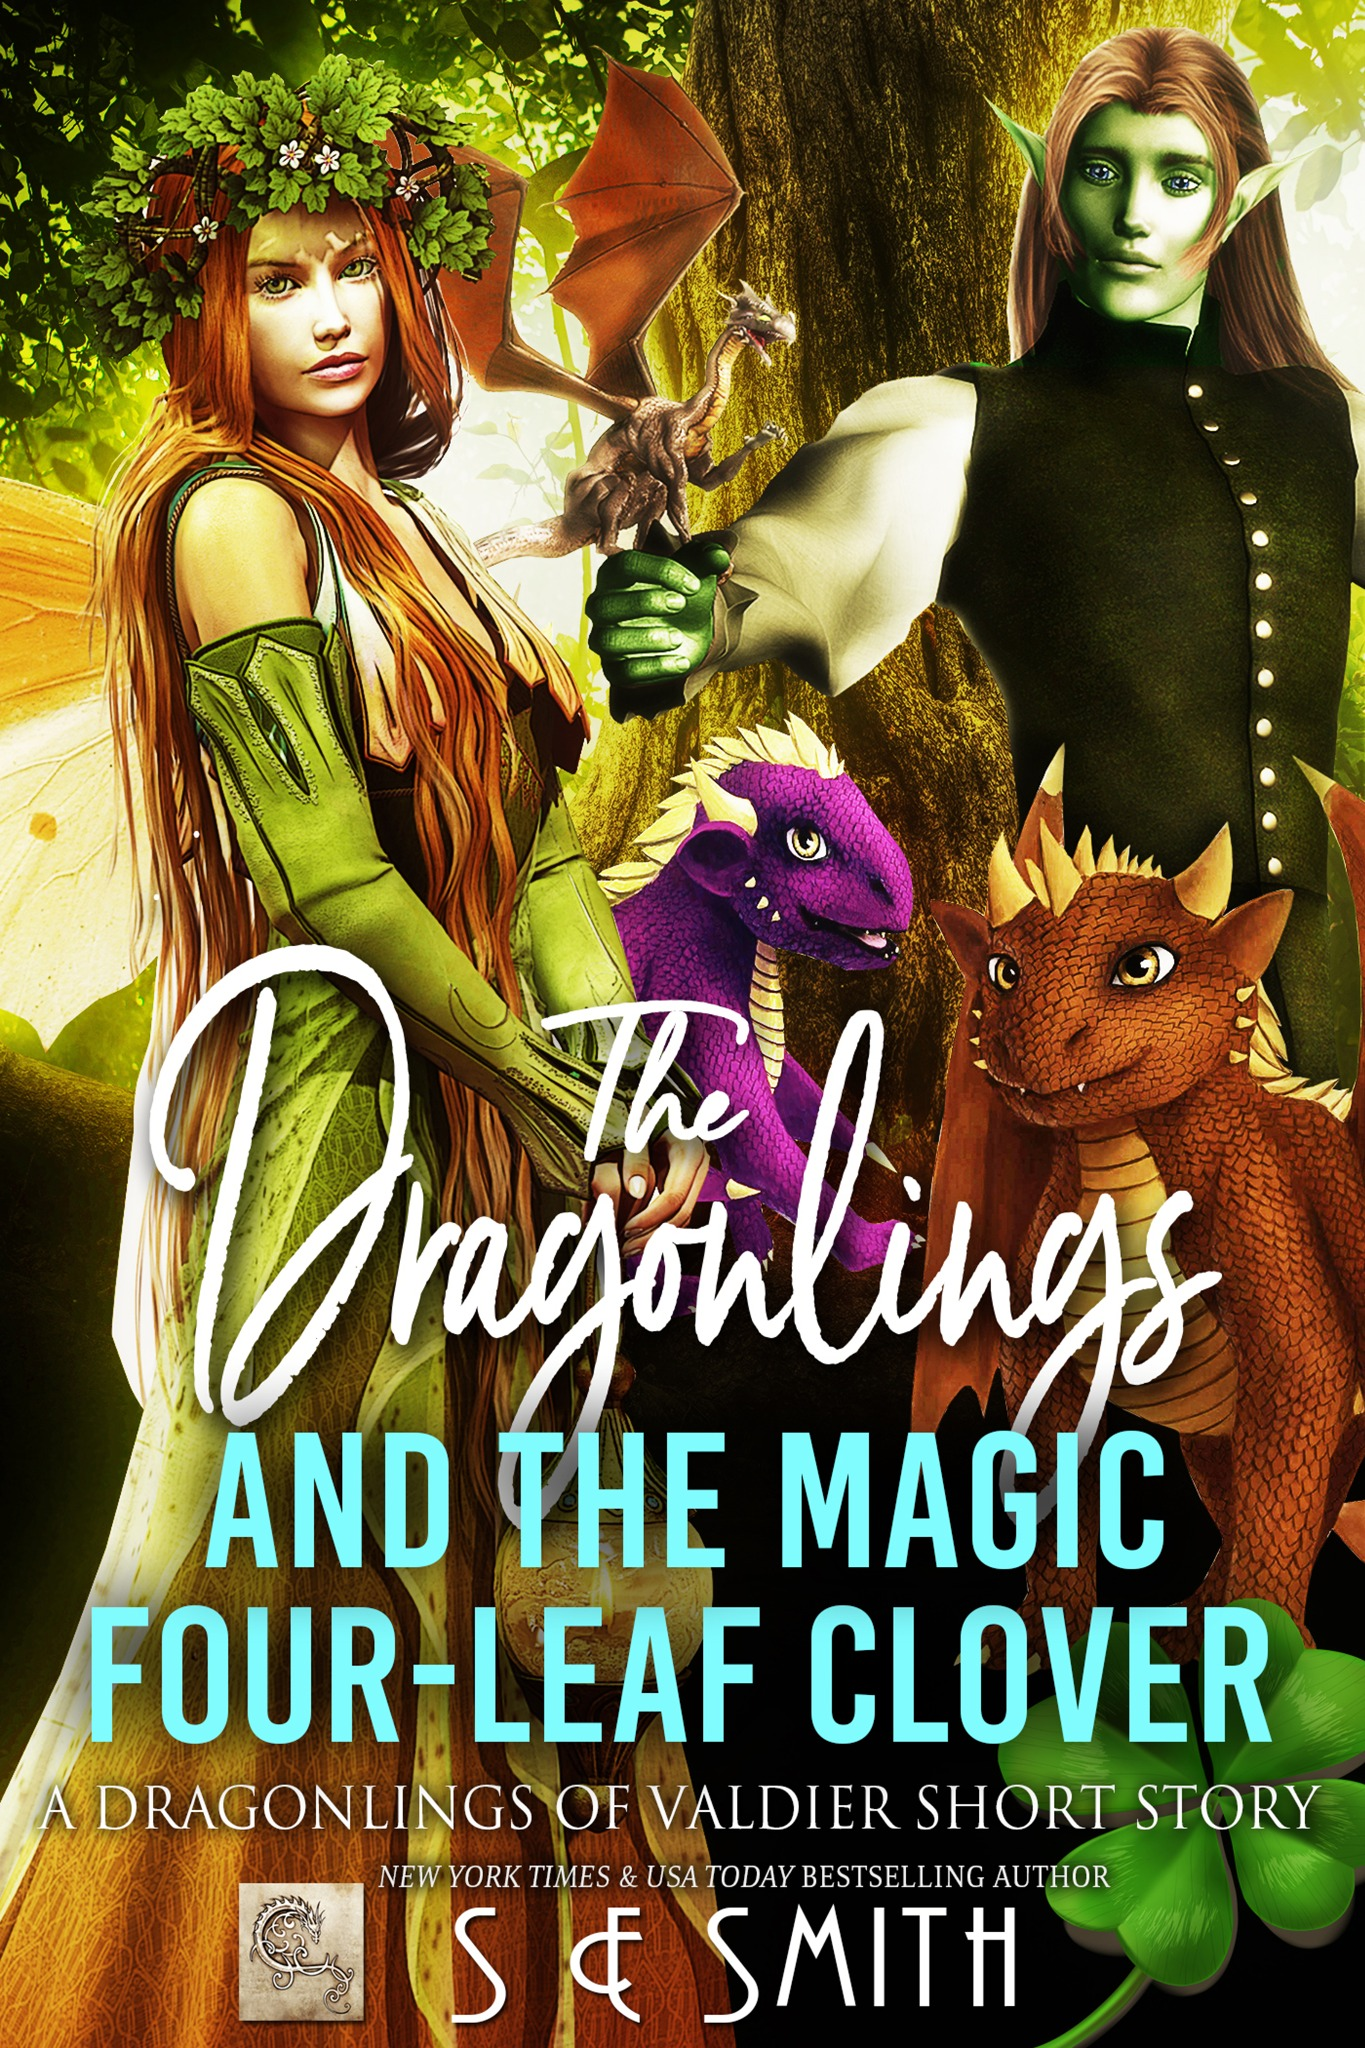 The Dragonlings and the Magic Four-Leaf Clover: A Dragonlings of Valdier (ebook: KIndle and epub)